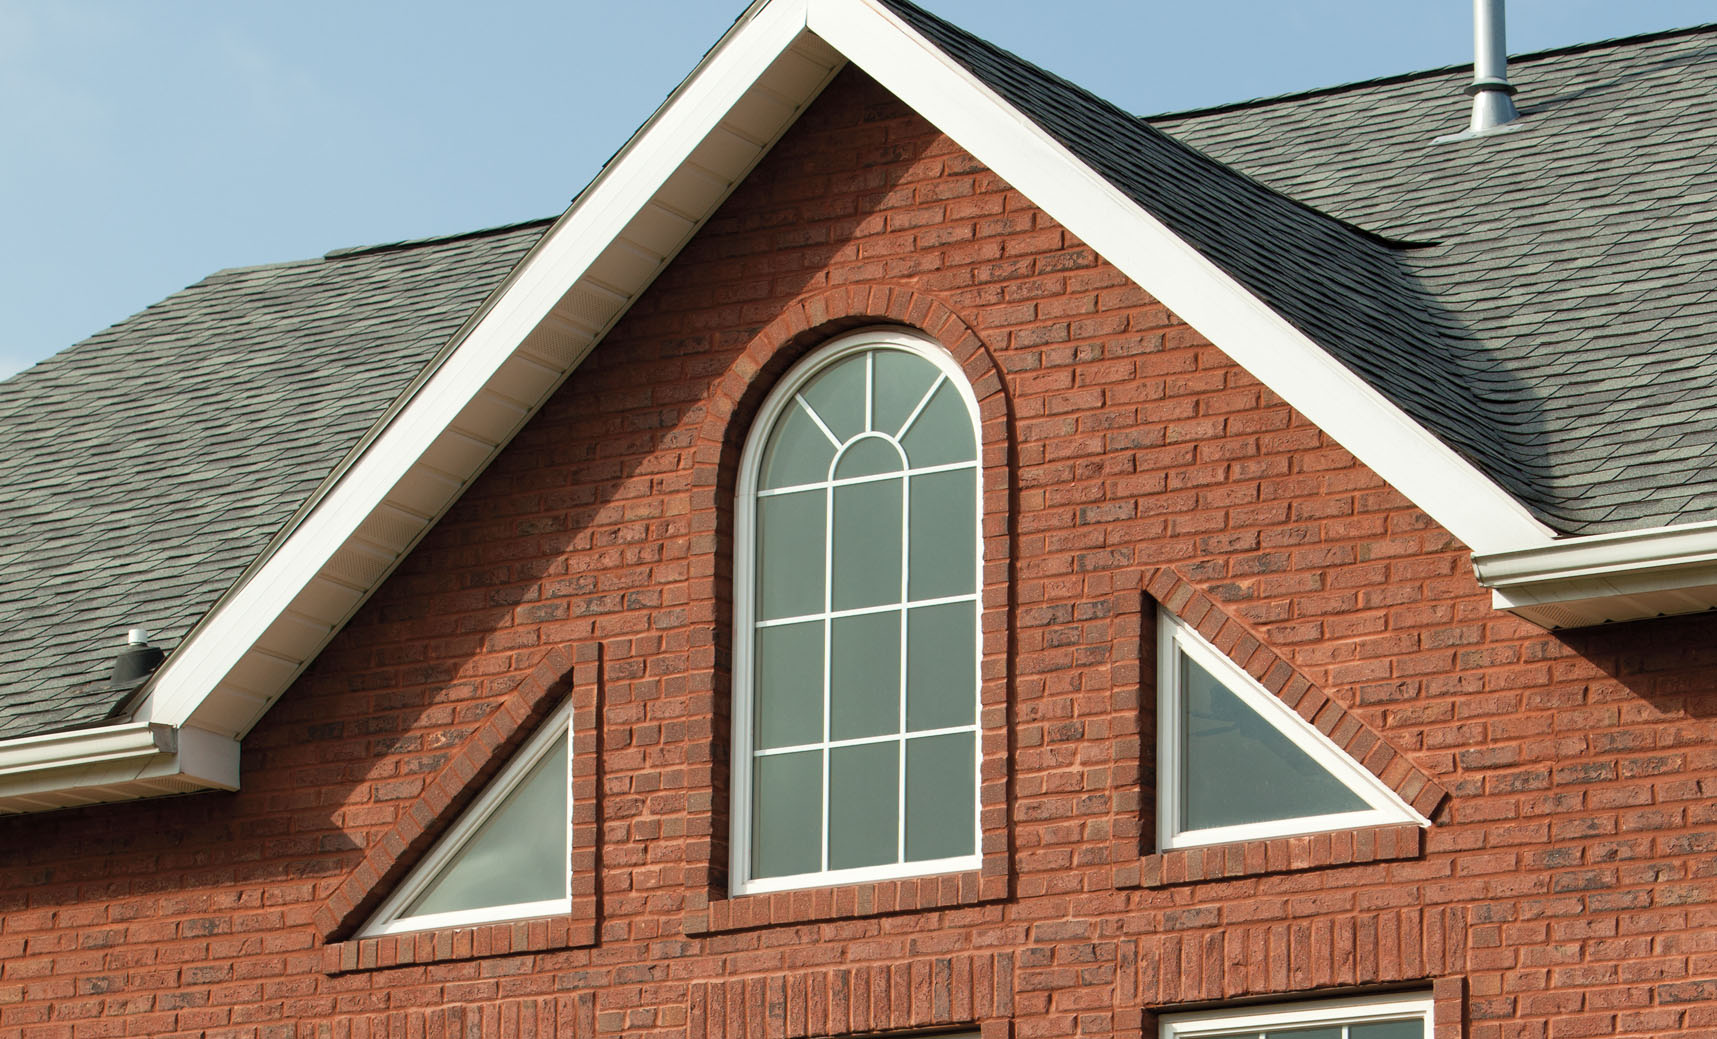 Simonton vinyl replacement geometric windows on brick house